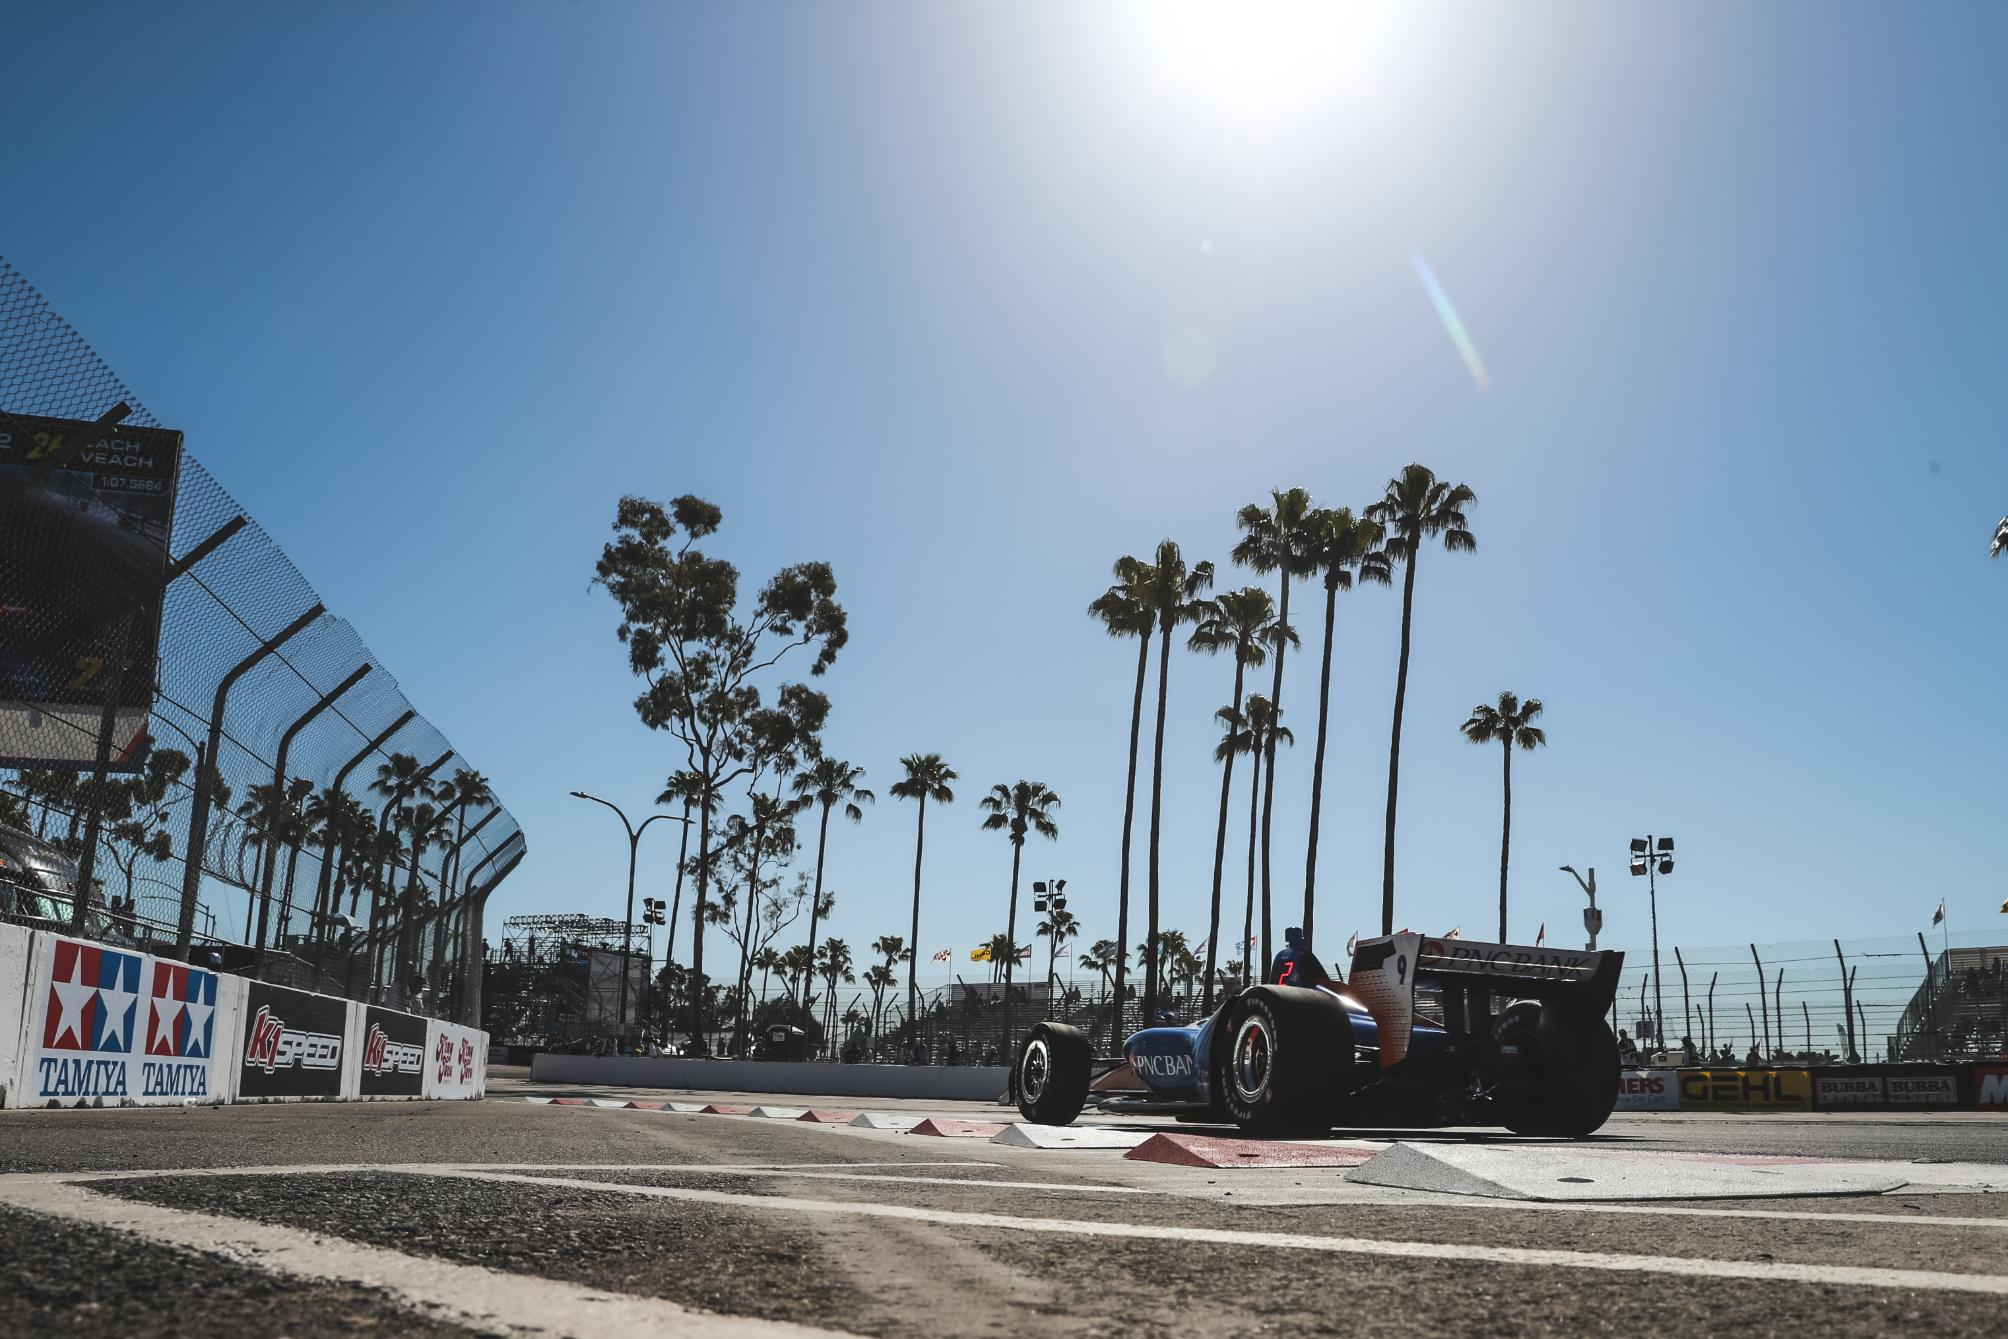 dixon_long_beach_2019_soymotor.jpg